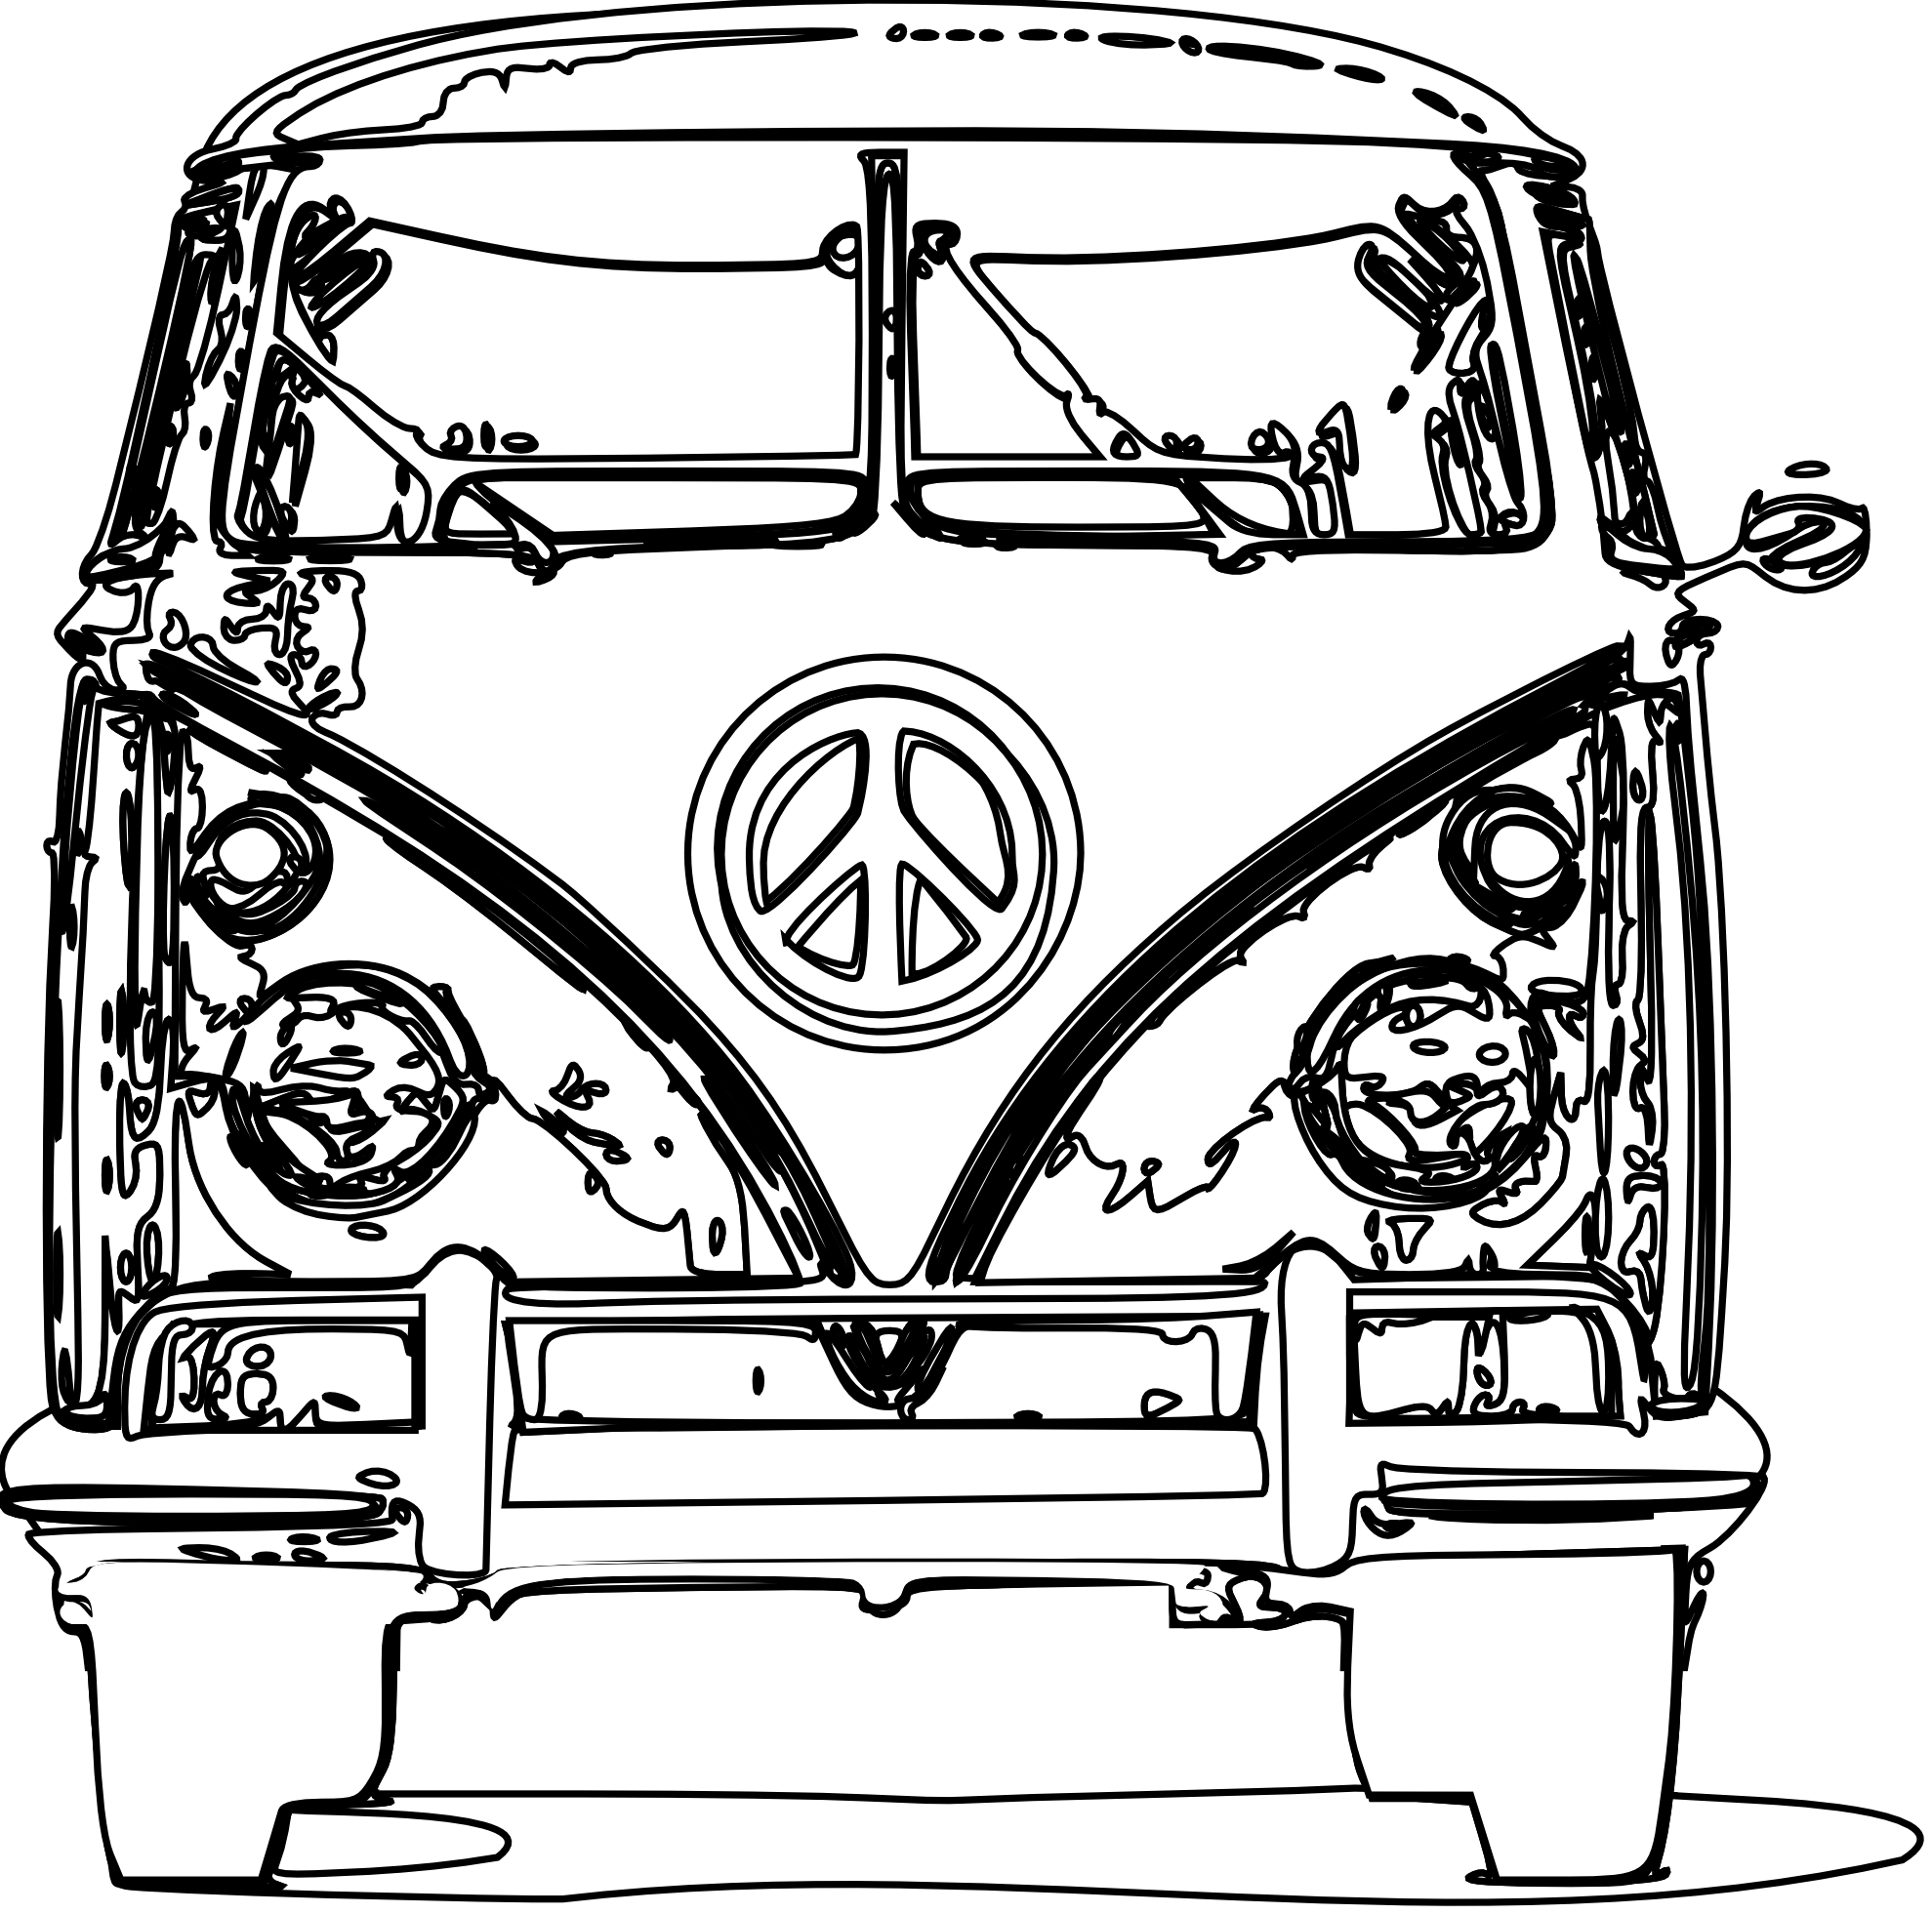 71 Vw Bus Starter Location